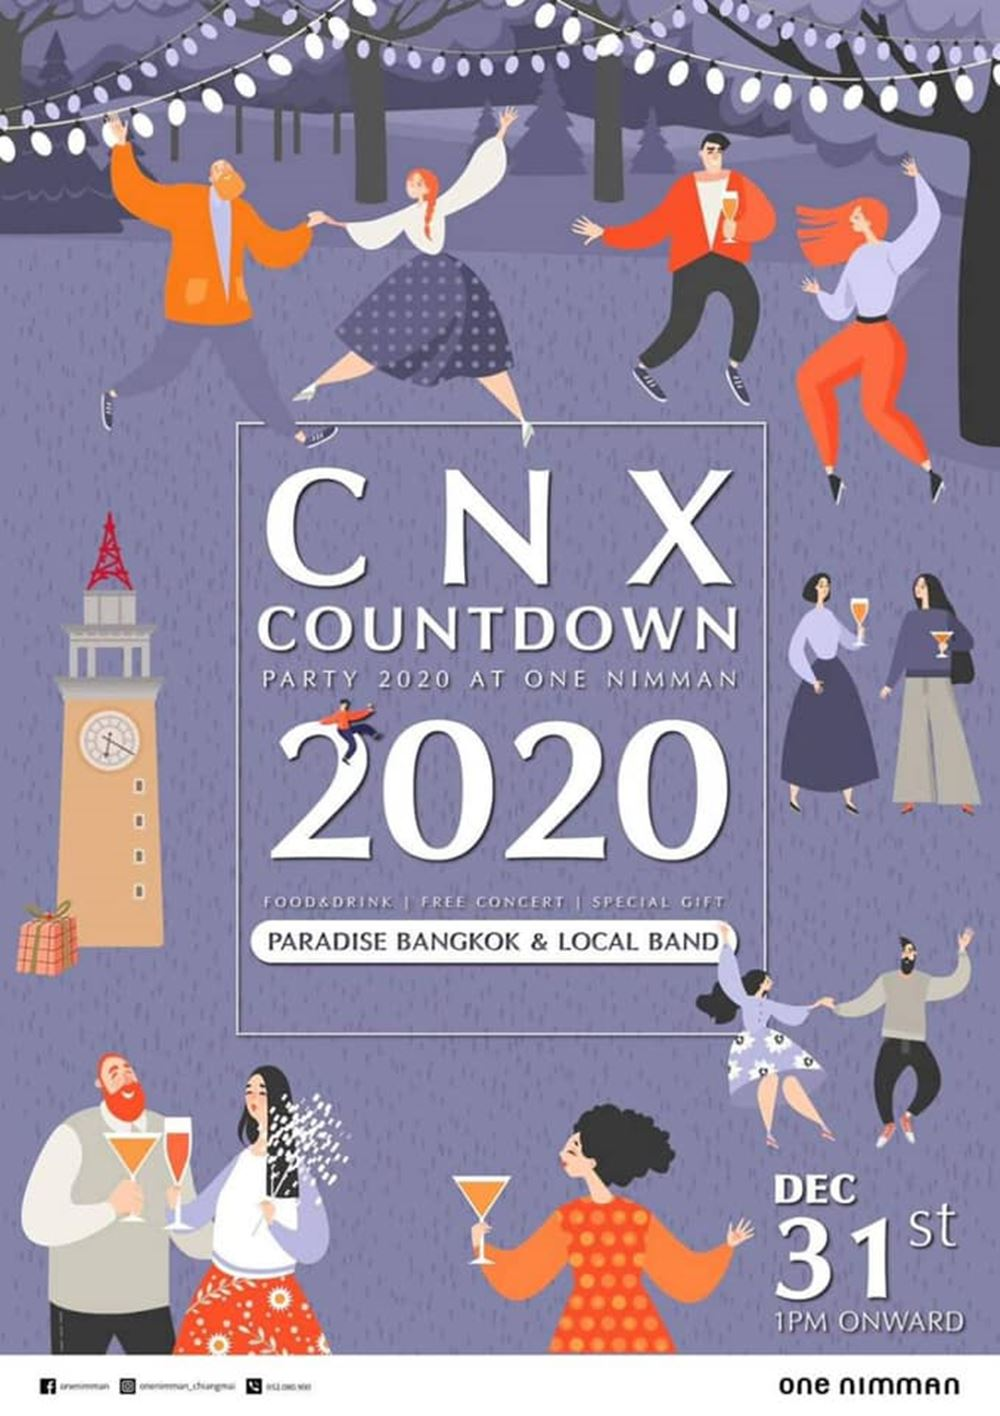 """CHIANGMAI COUNTDOWN PARTY 2020 AT ONE NIMMAN "" ในวันที่ ..."